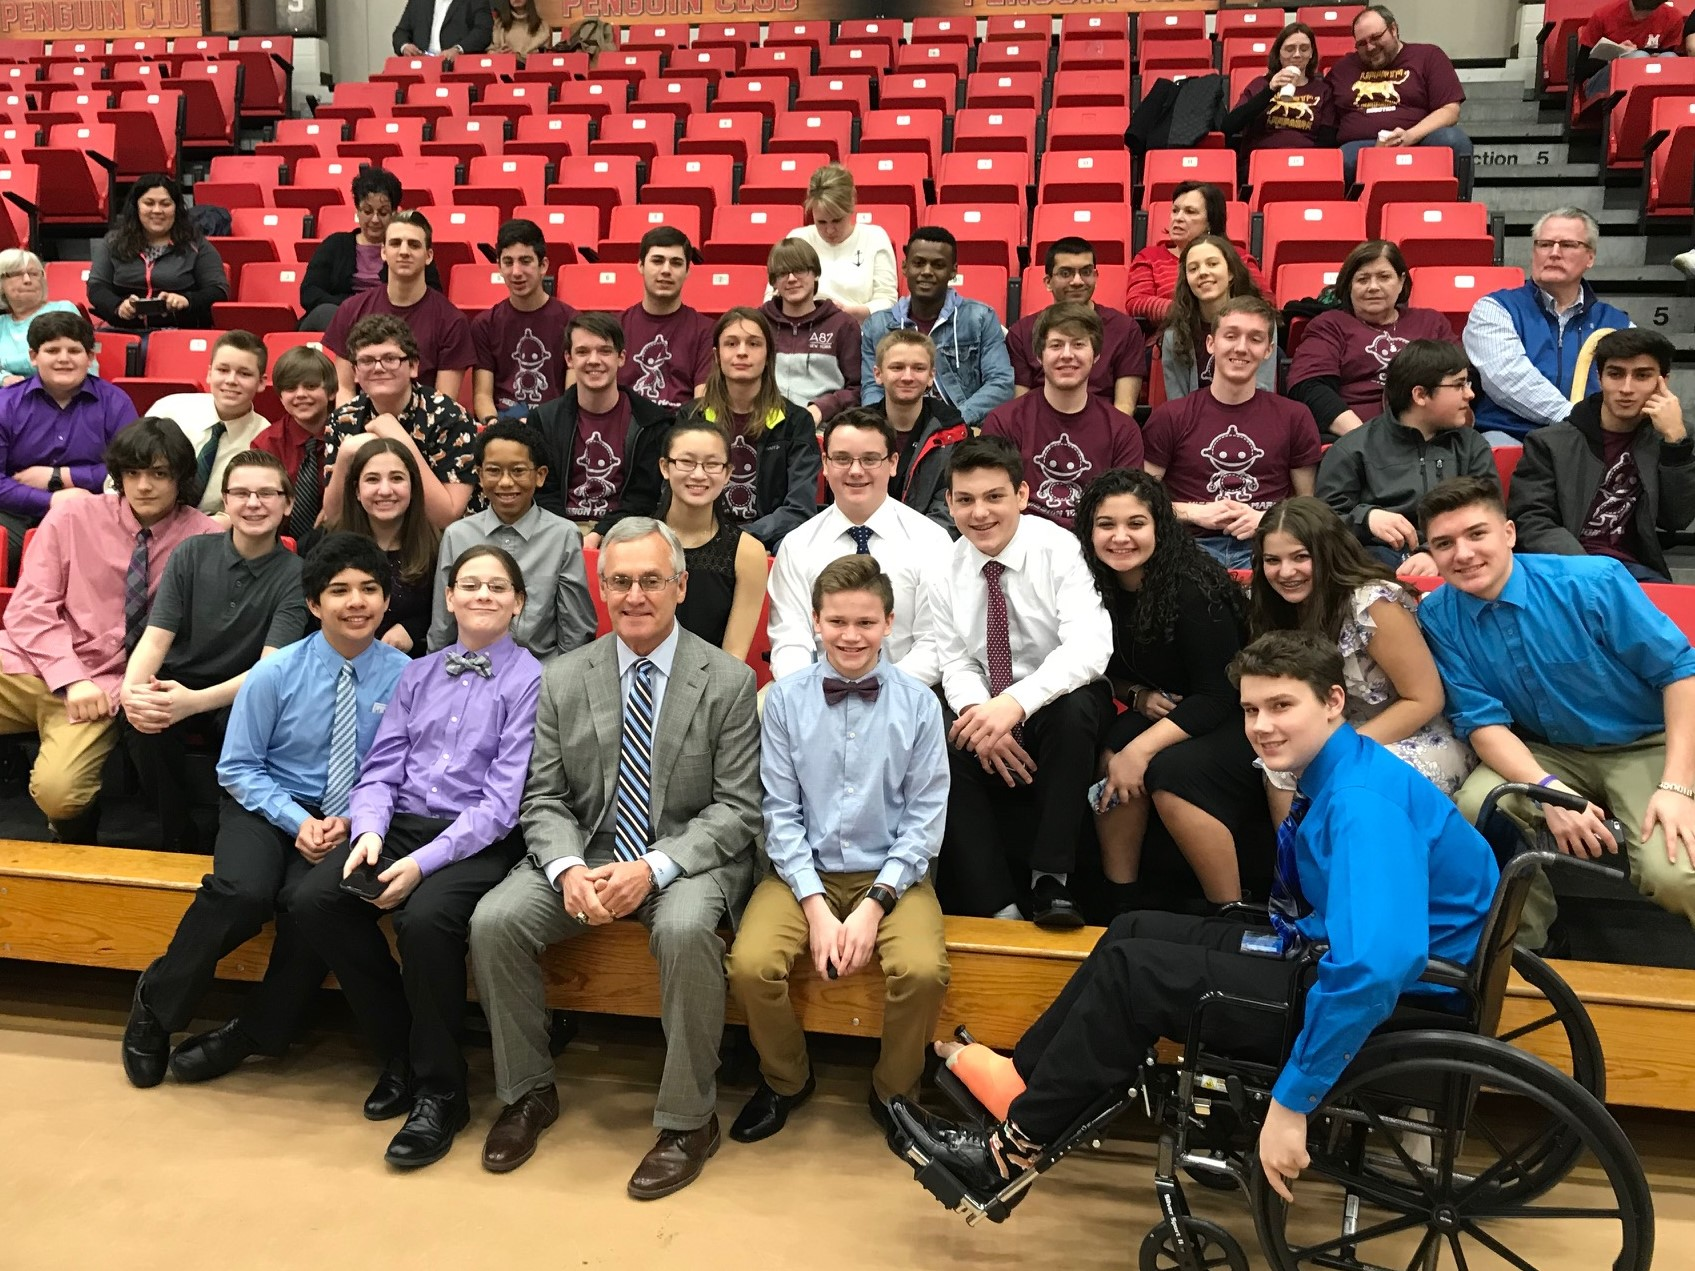 ROBOTICS TEAMS WITH YSU  PRESIDENT JIM TRESSEL